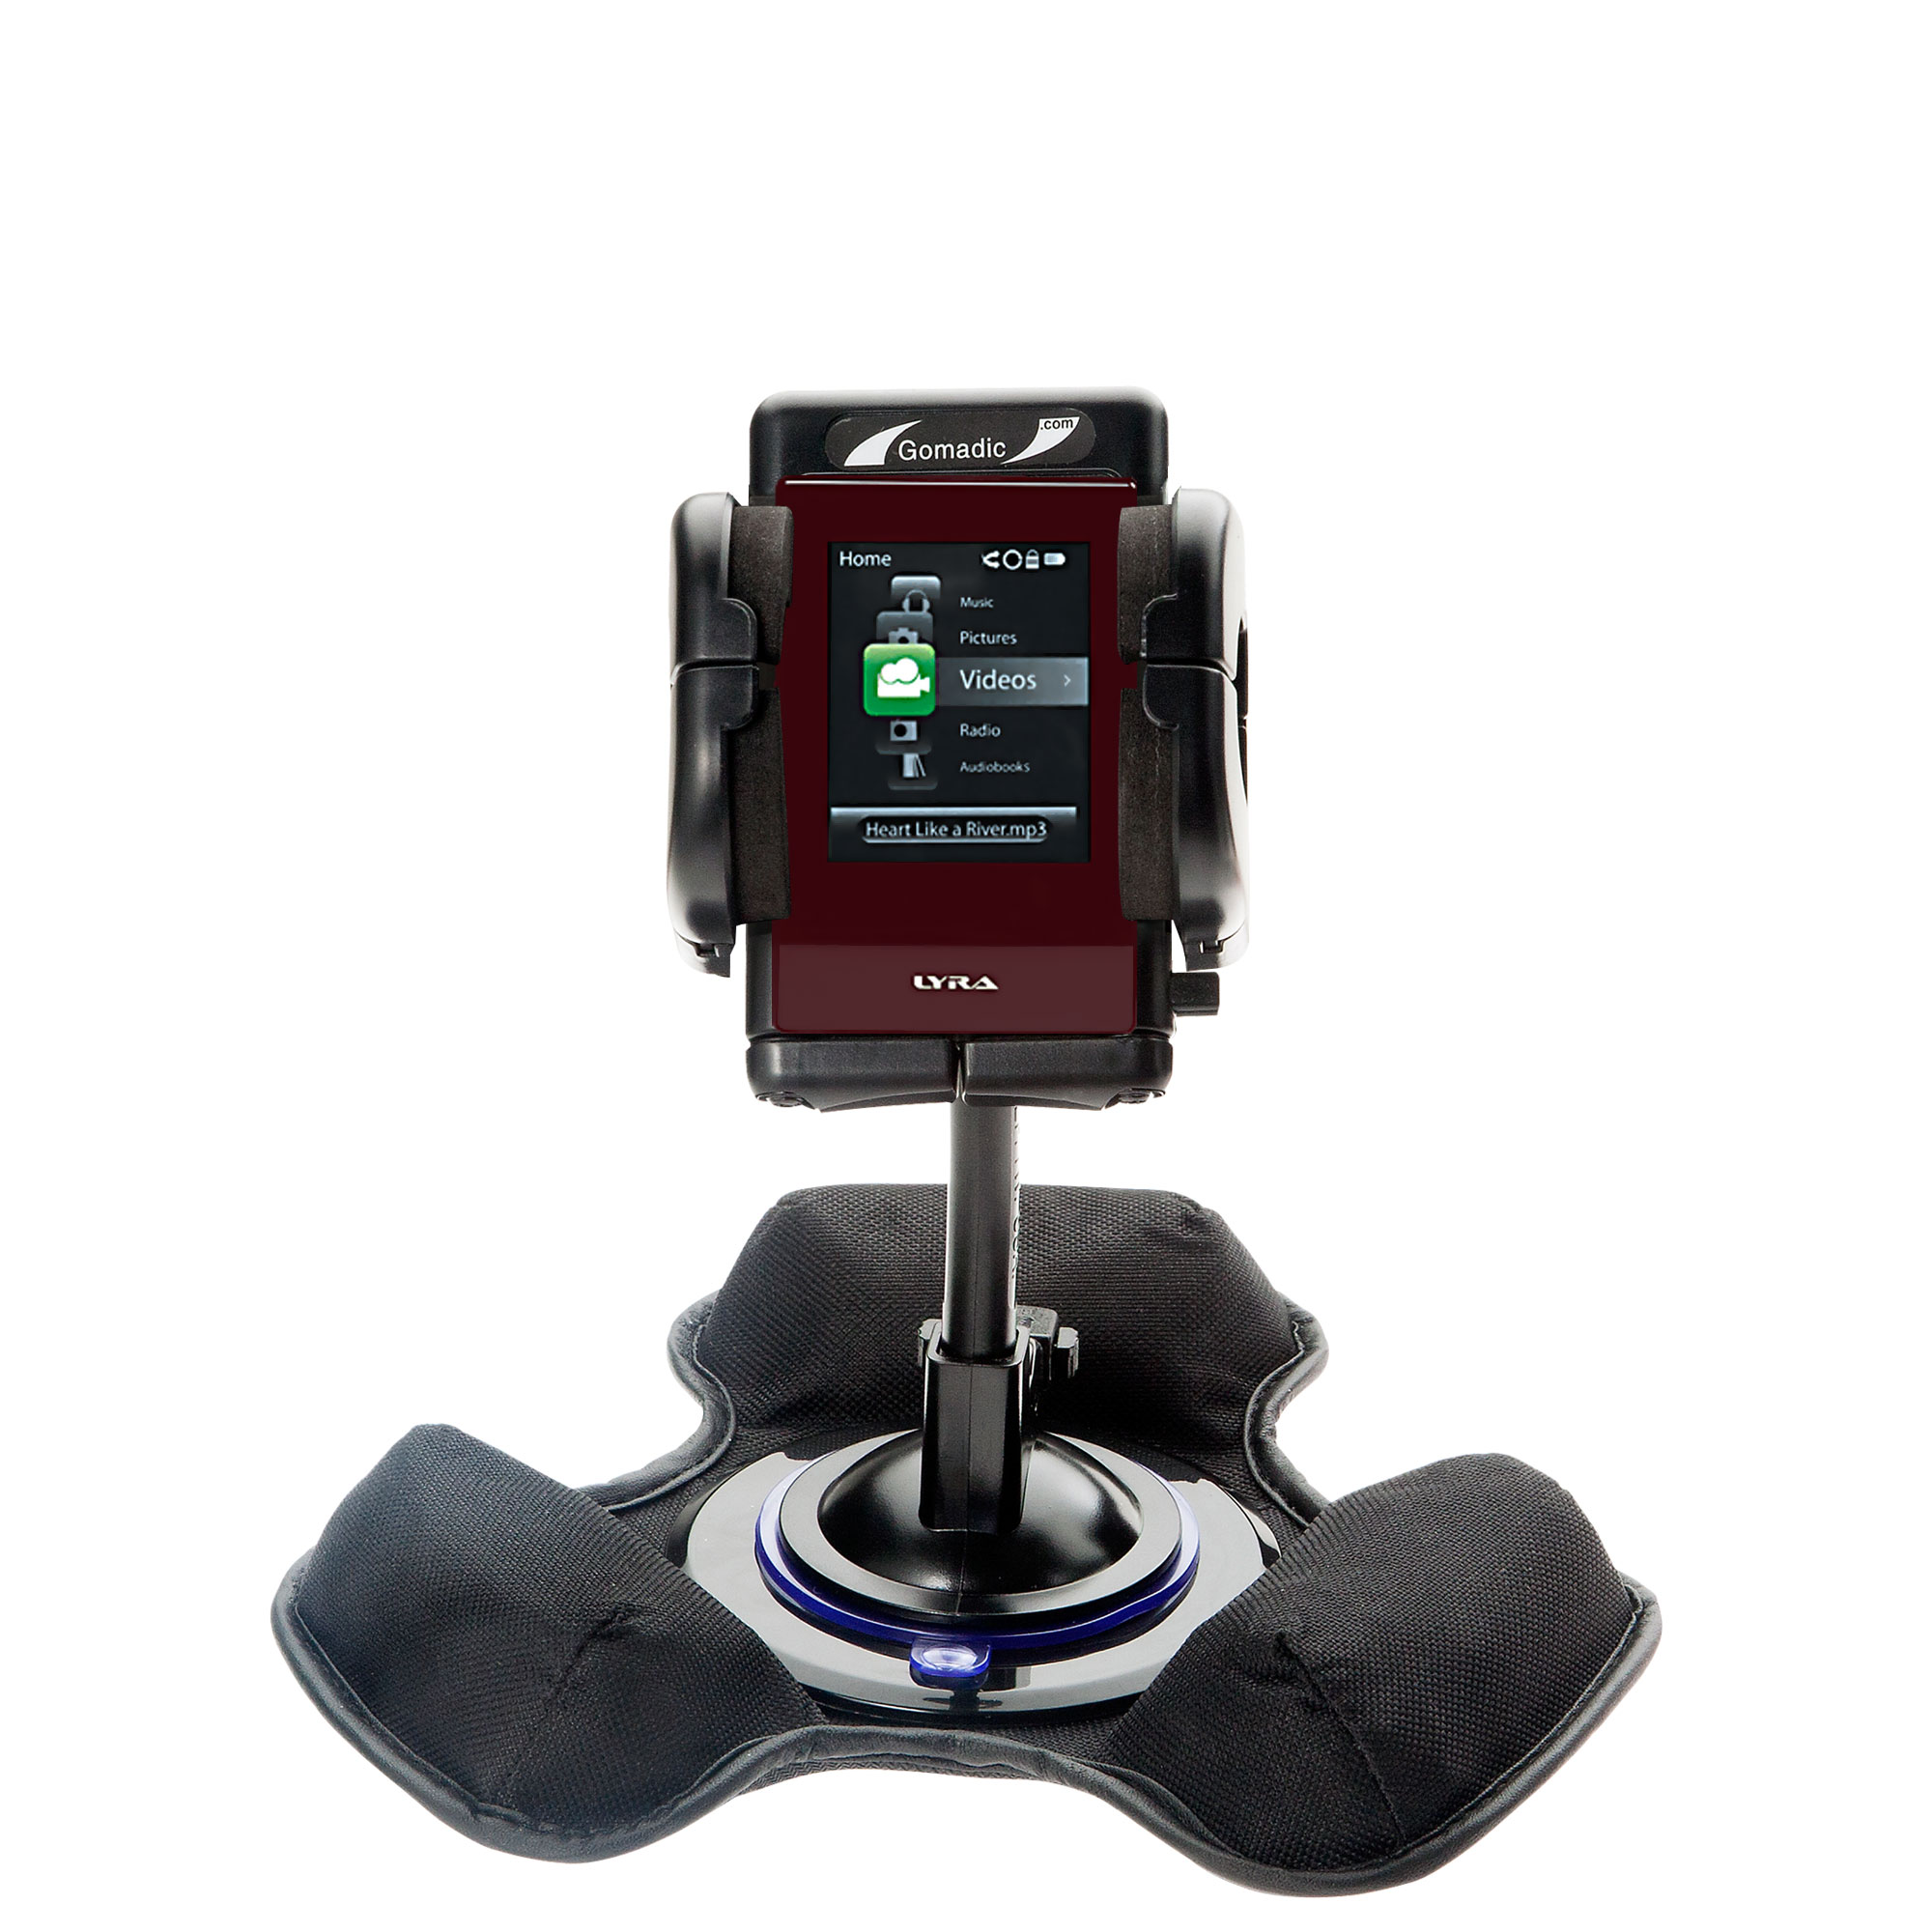 Dash and Windshield Holder compatible with the RCA SL5016 LYRA Slider Media Player